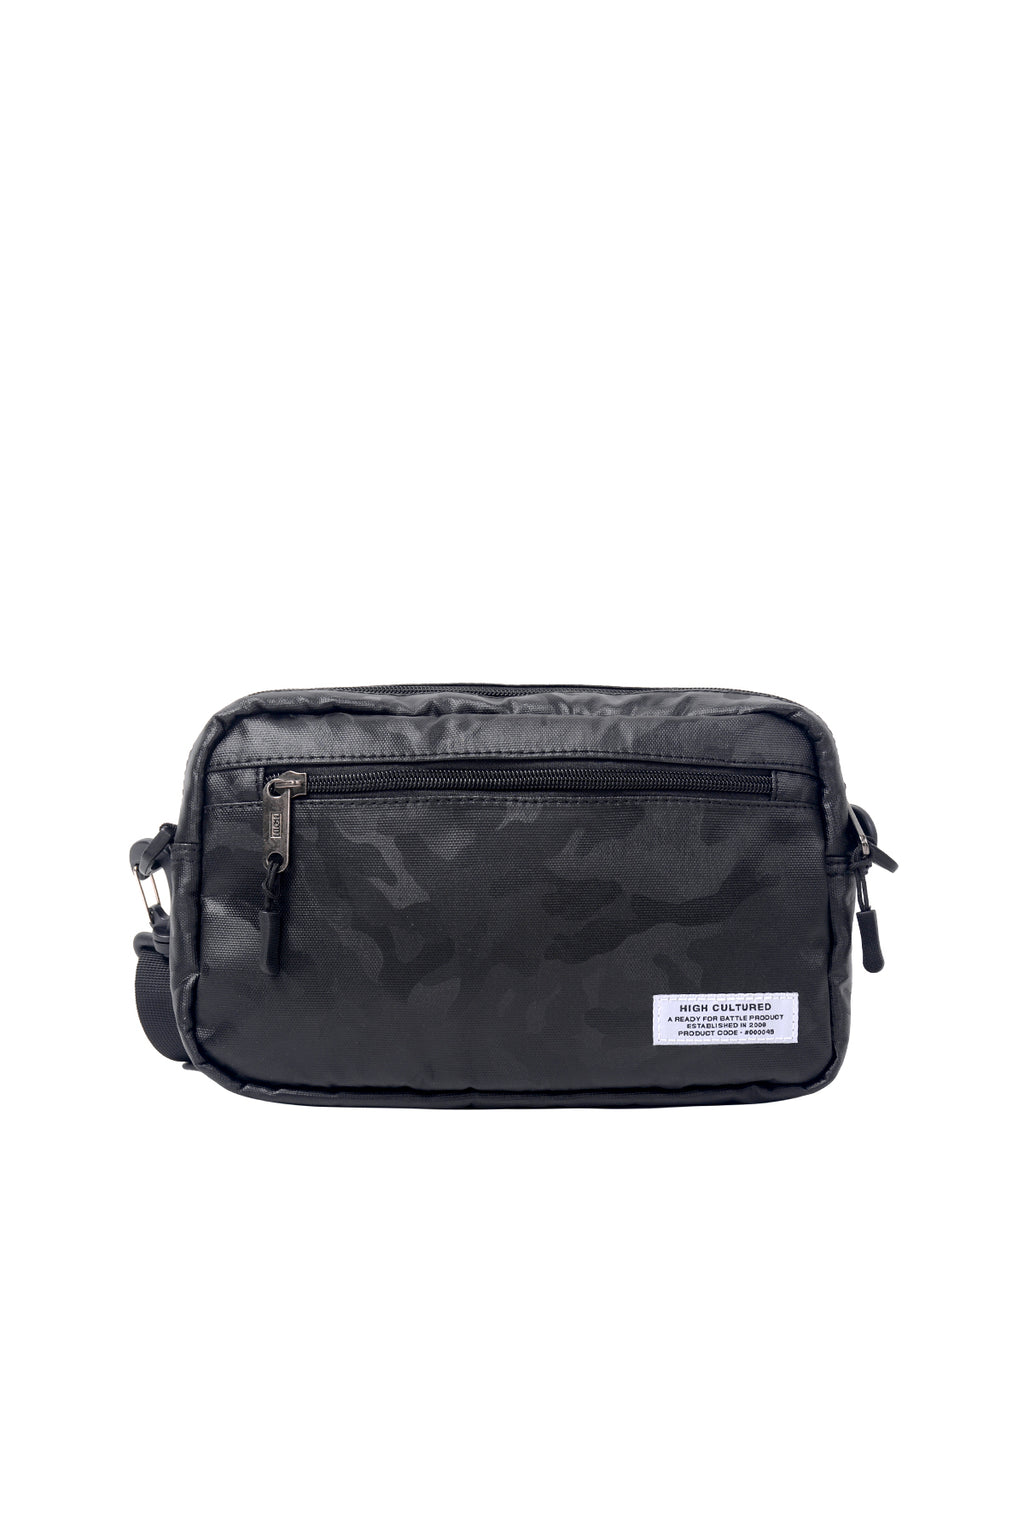 TWO-TONE CAMO MEDIUM ESSENTIAL BAG - 30